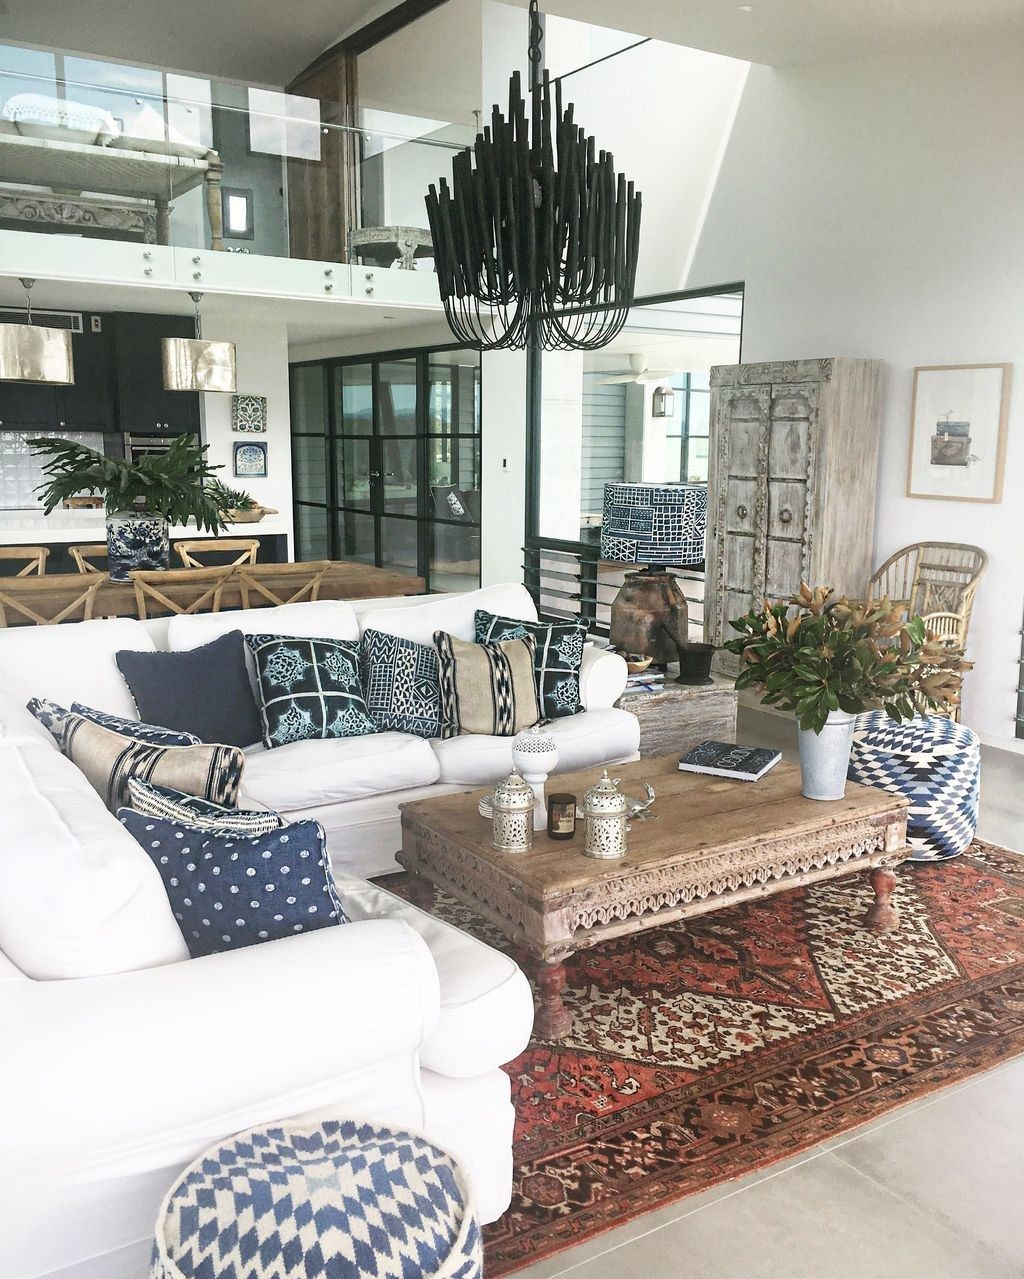 Beautiful Persian Rug Ideas For Living Room Decor 19 Rugs In Living Room Persian Rug Liv In 2021 Persian Rug Living Room Persian Carpet Living Room Rugs In Living Room